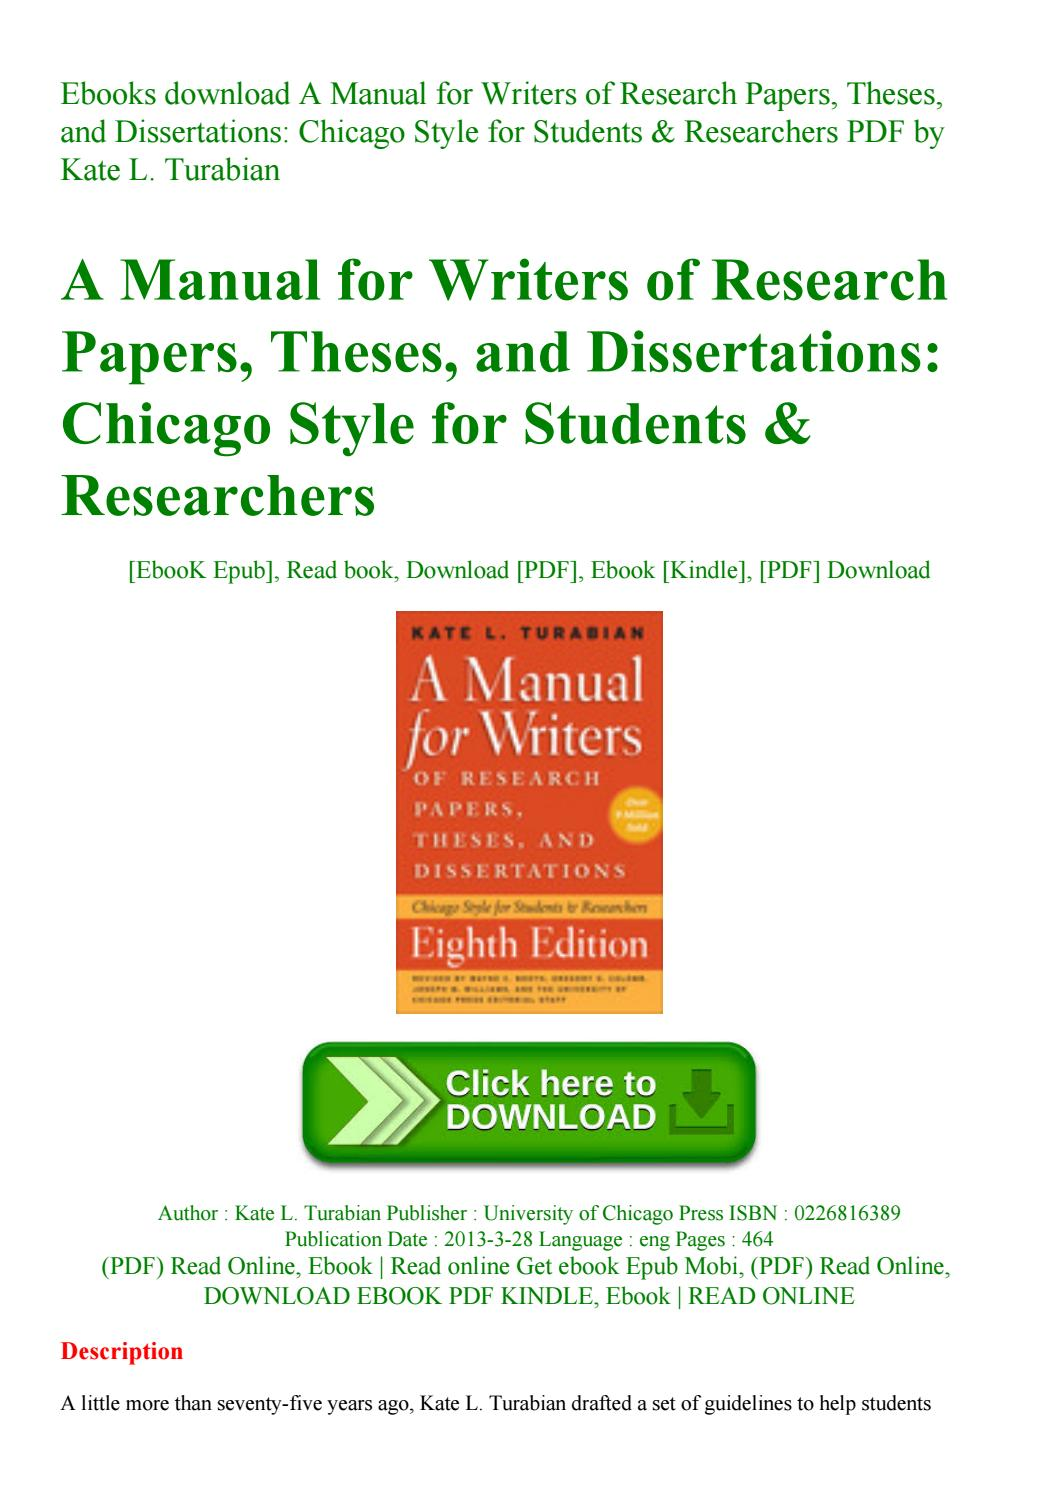 009 Manual For Writers Of Research Papers Theses And Dissertations Chicago Style Students Paper Page 1 Rare A Full